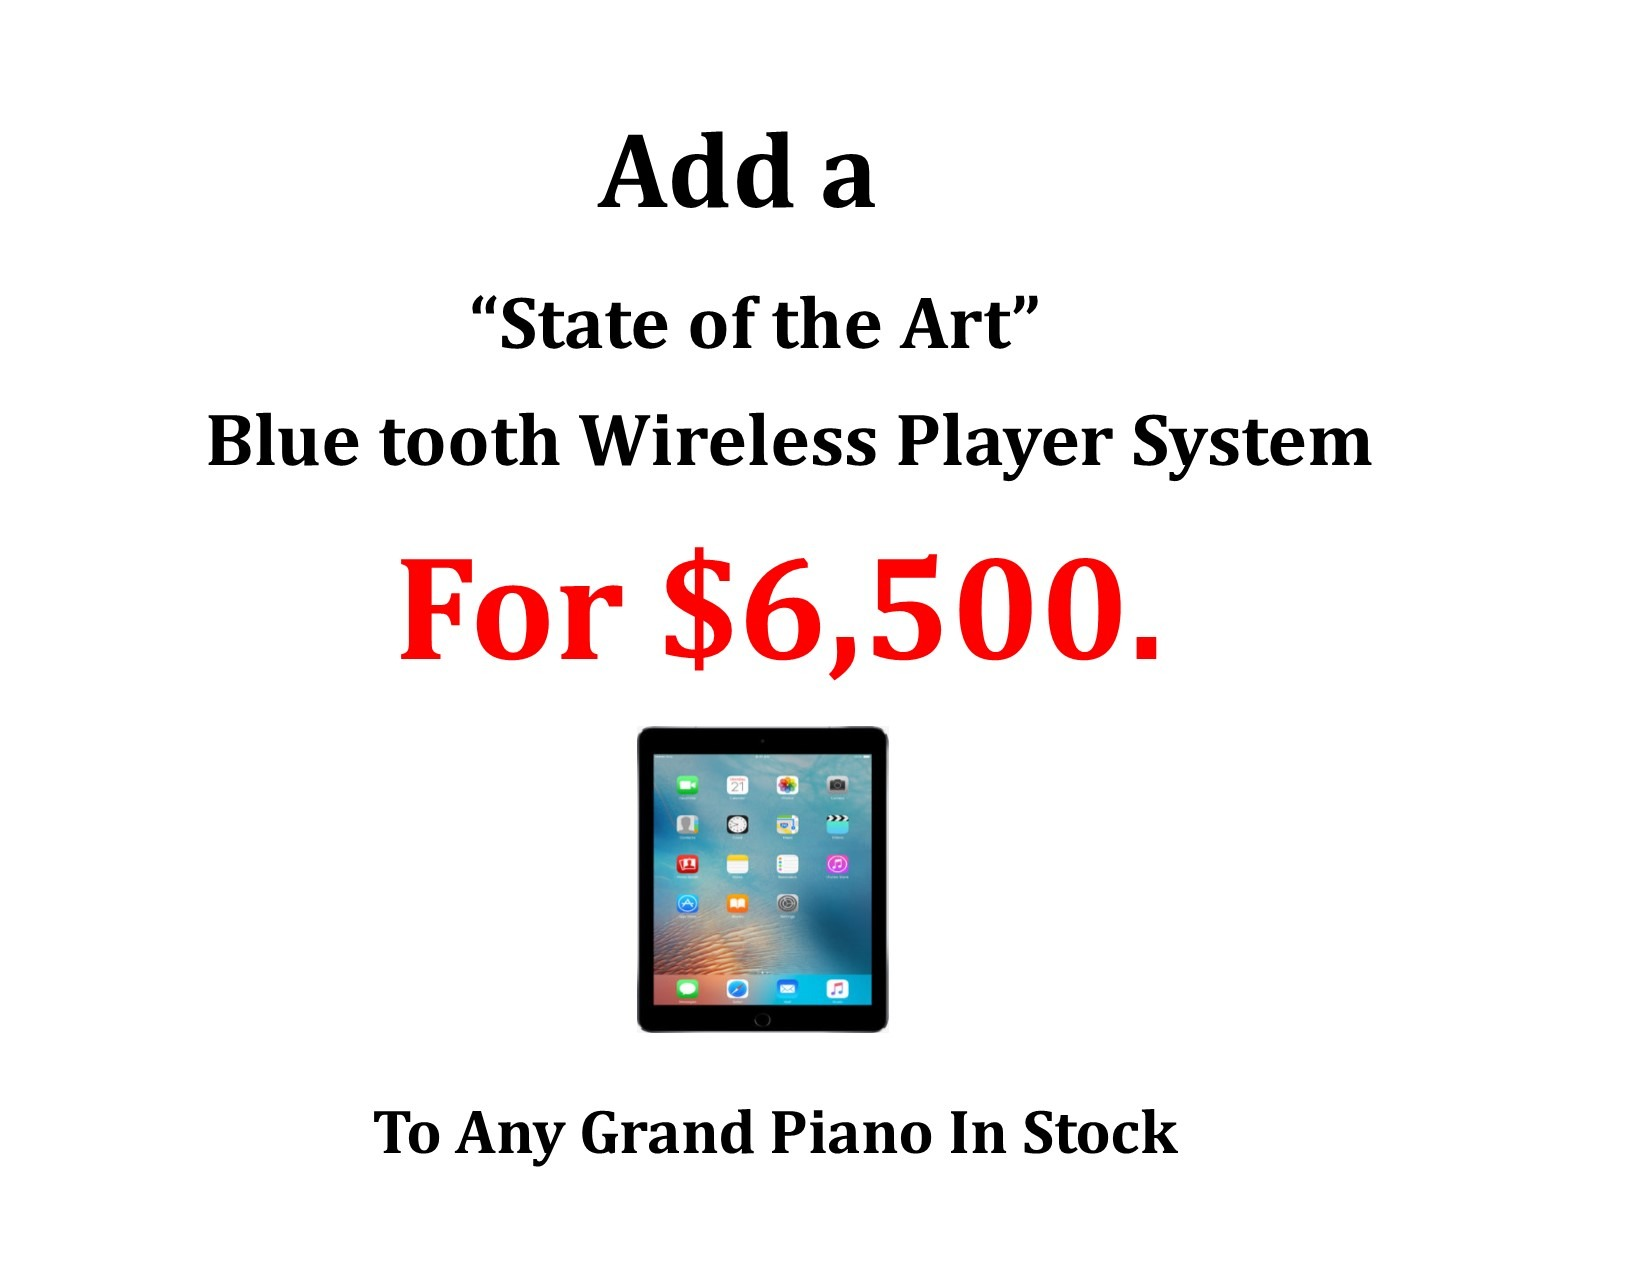 """15214-Add a """"State of the Art"""" Bluetooth Wireless Player for $6,500. To Any Grand Piano In Stock !"""